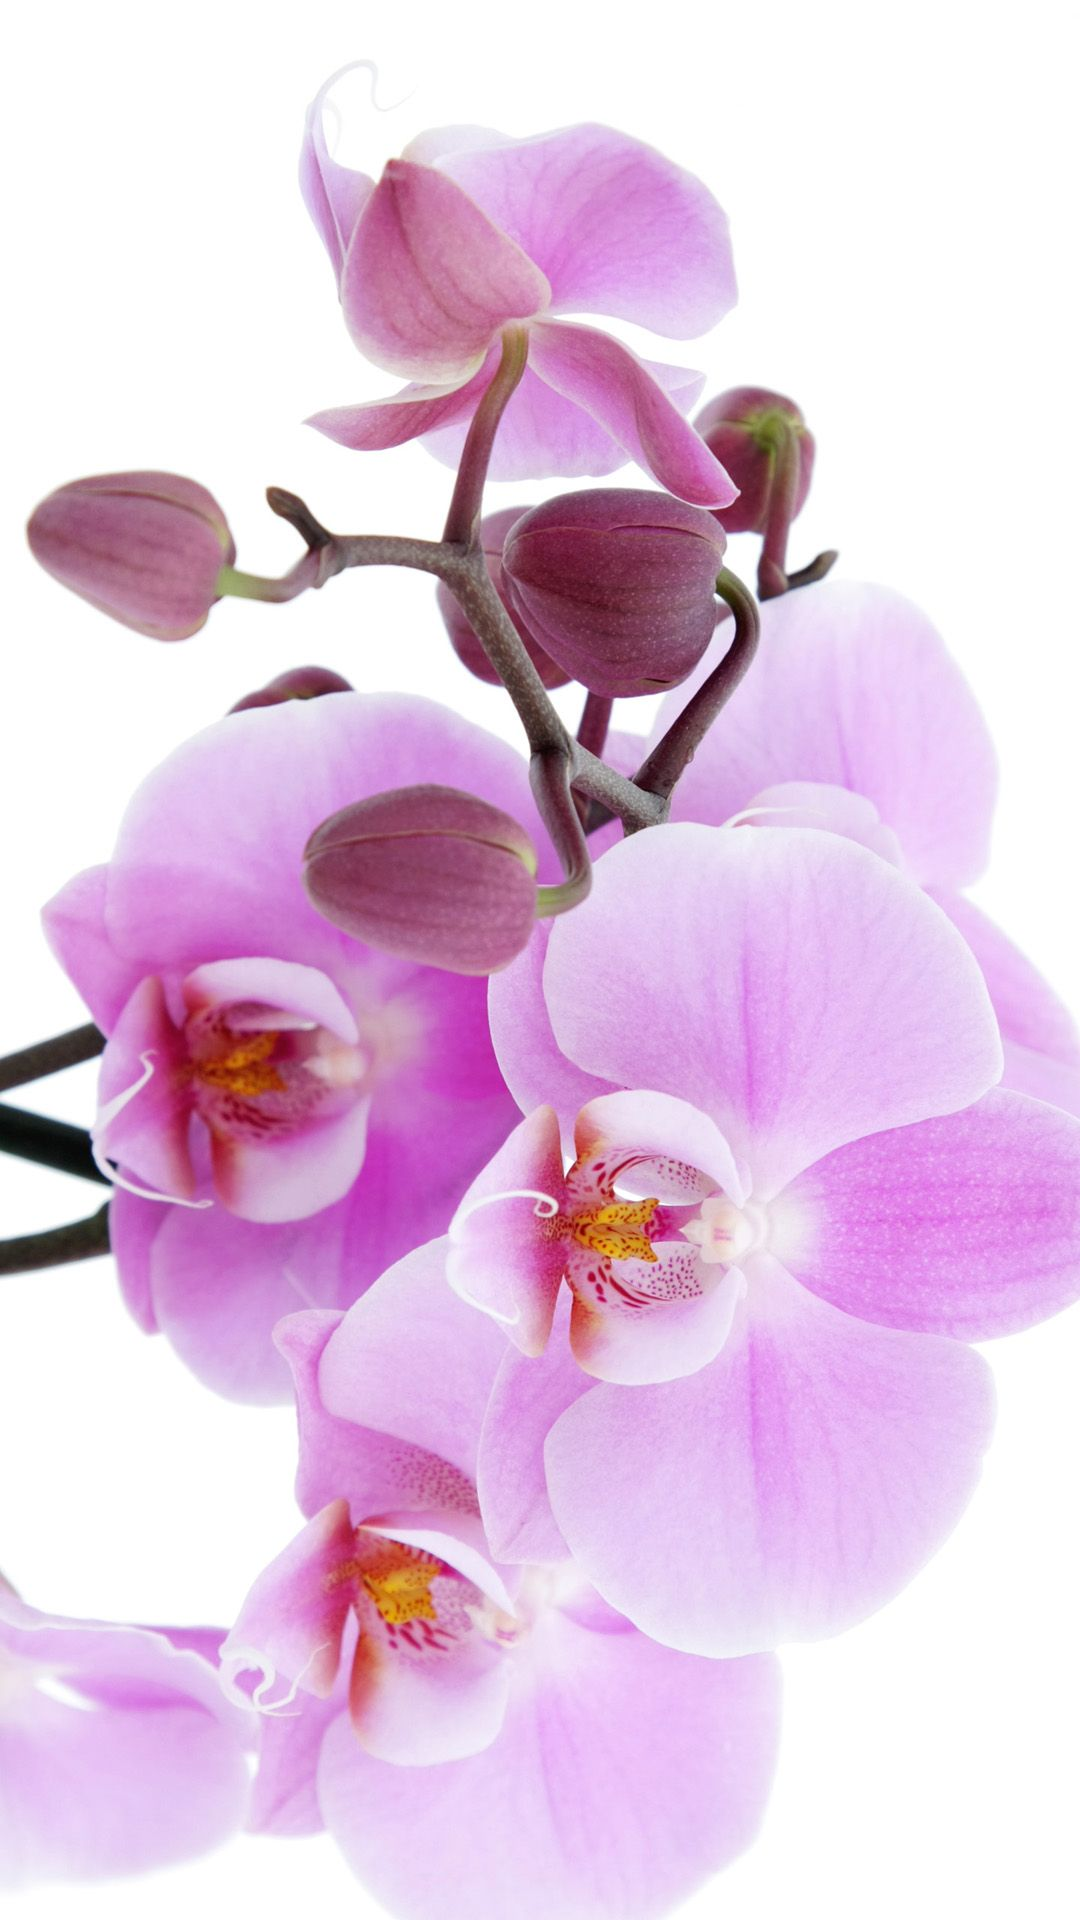 Pure Pink Orchid Iphone 6 Wallpaper Download Iphone Wallpapers Ipad Wallpapers One Stop Download Orchid Wallpaper Flower Phone Wallpaper Flower Wallpaper